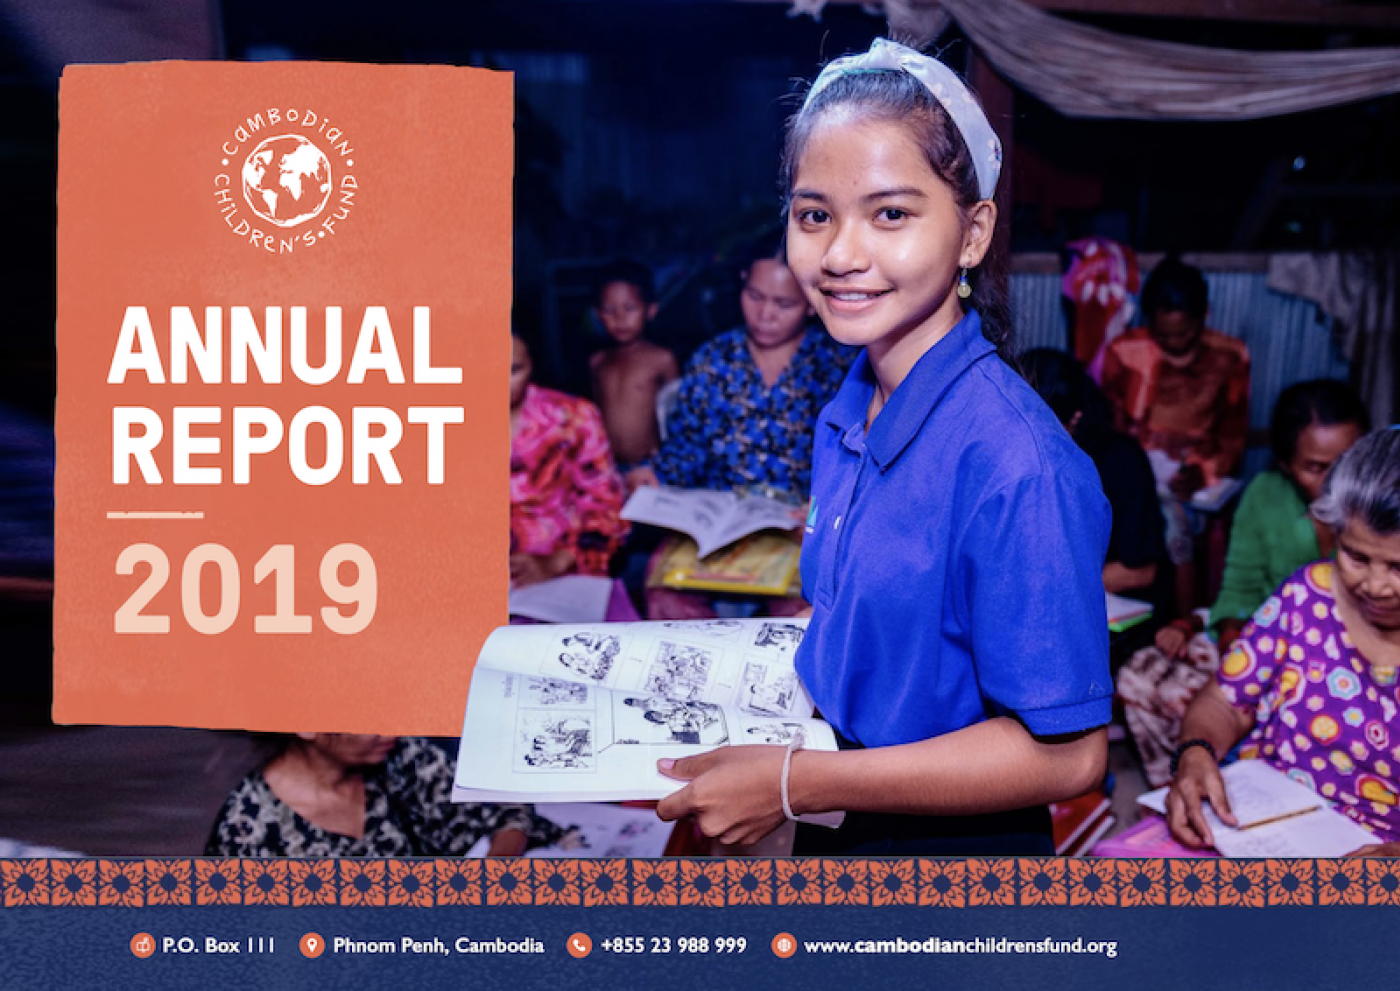 Annualreport2019cover